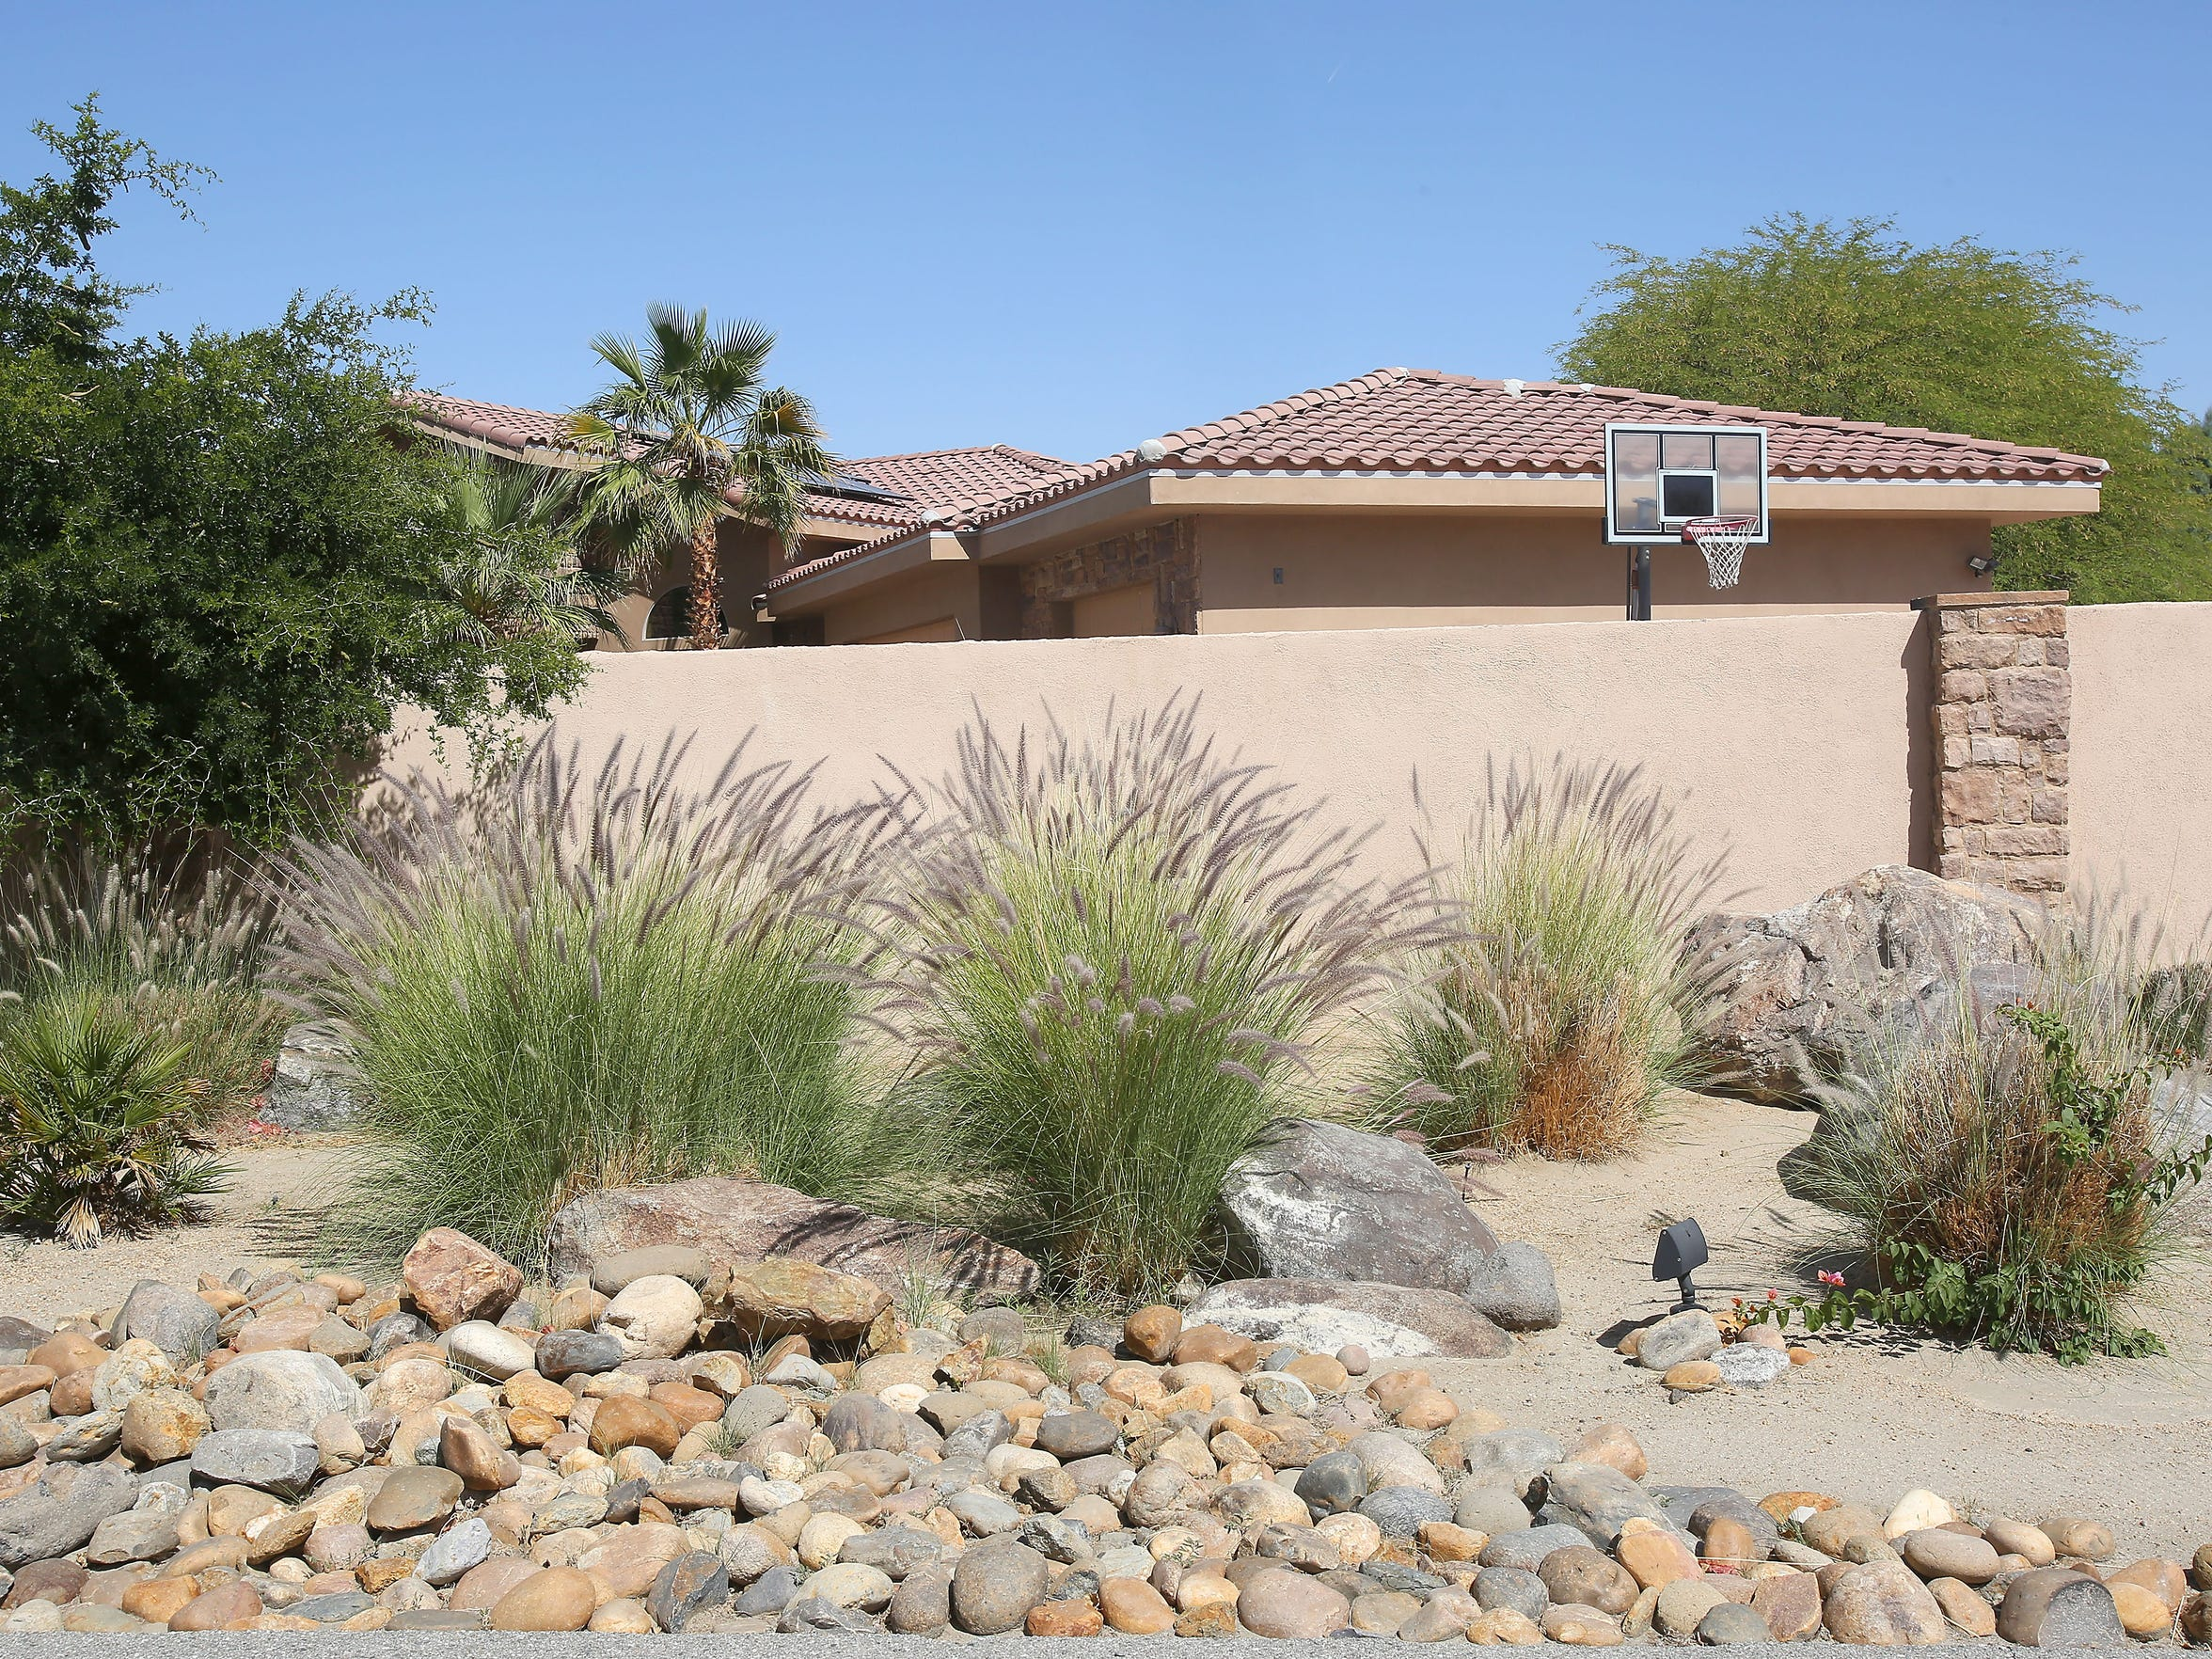 Drought tolerant landscaping at a home in Bermuda Dunes.